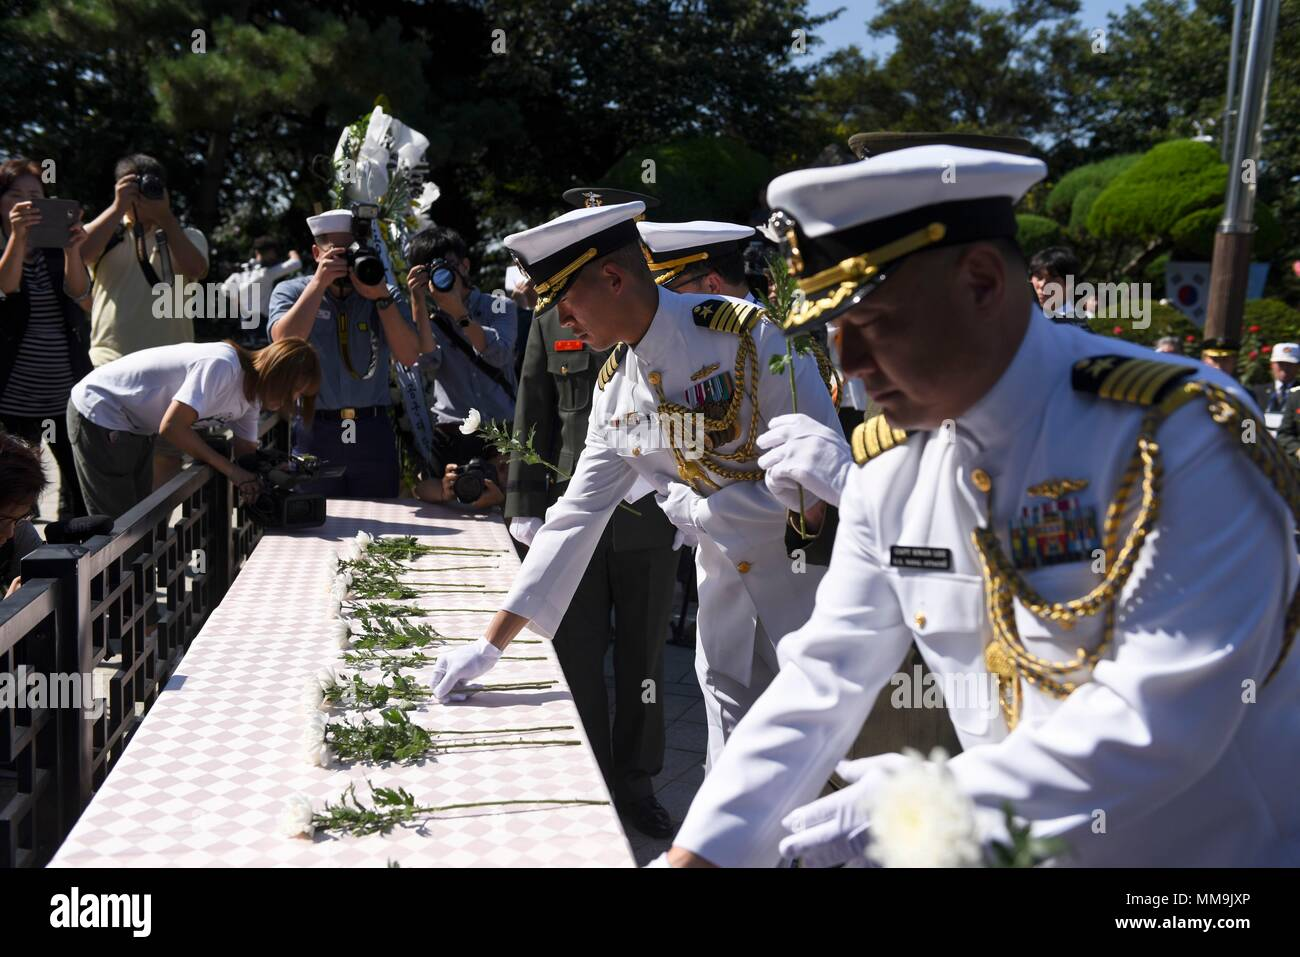 170915-N-TB148-155 Incheon, Republic of Korea (Sept. 15, 2017)Capt. Hank Kim, chief of staff of Commander, U.S. Naval Forces Korea, and Capt. Kwang Lee, U.S. Navy Attache', lay flowers at the Gen. Douglas MacArthur statue during the 67th Incheon Landing Operations Commemoration Ceremony.  Incheon landing was a combined U.S. and ROK military assault during the Korean War is considered one of the most significant and successful operations in the history of amphibious warfare. (U.S. Navy photo by Mass Communication Specialist Seaman William Carlisle) Stock Photo